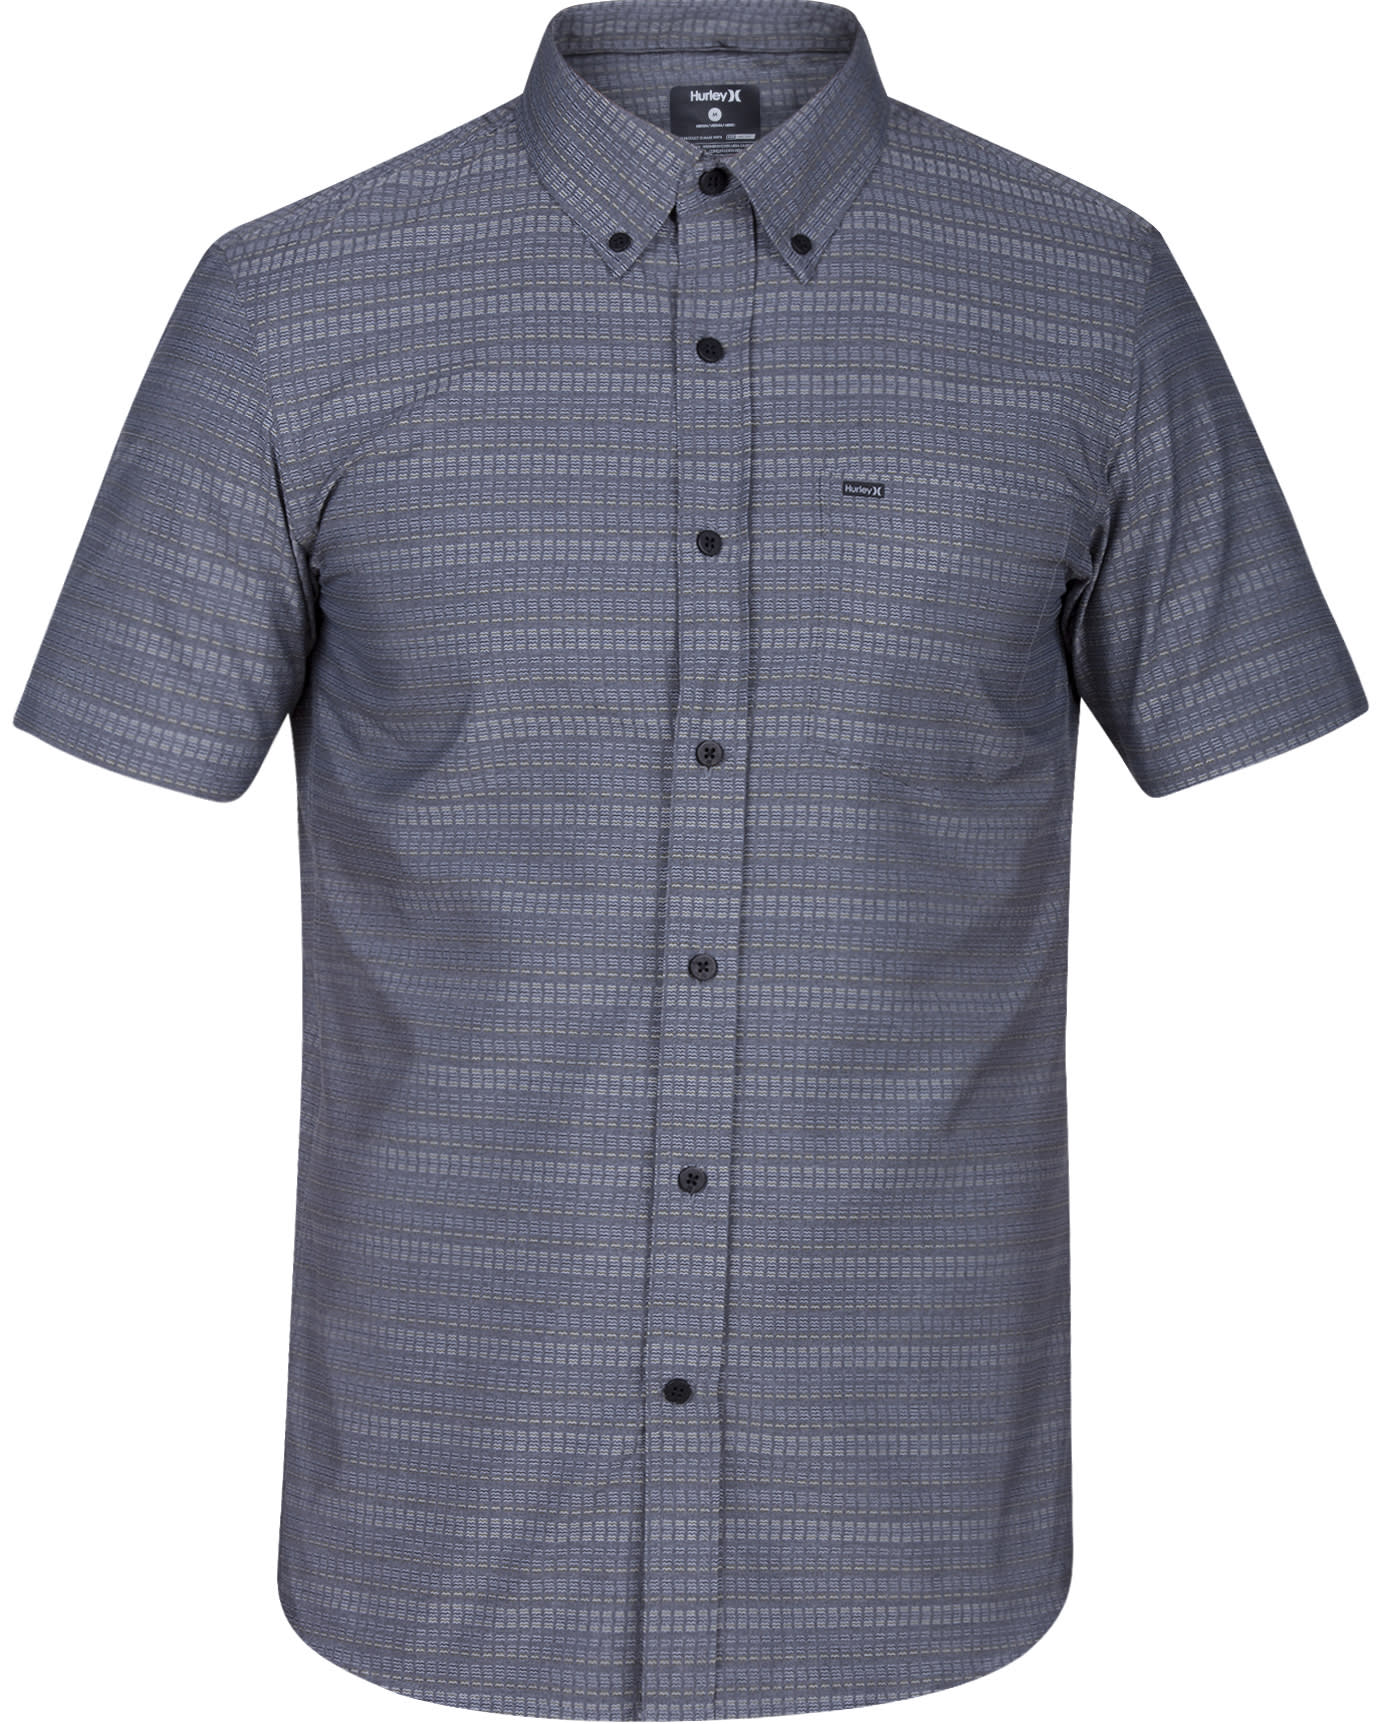 On sale hurley dri fit sound shirt up to 40 off for Dri fit shirts on sale